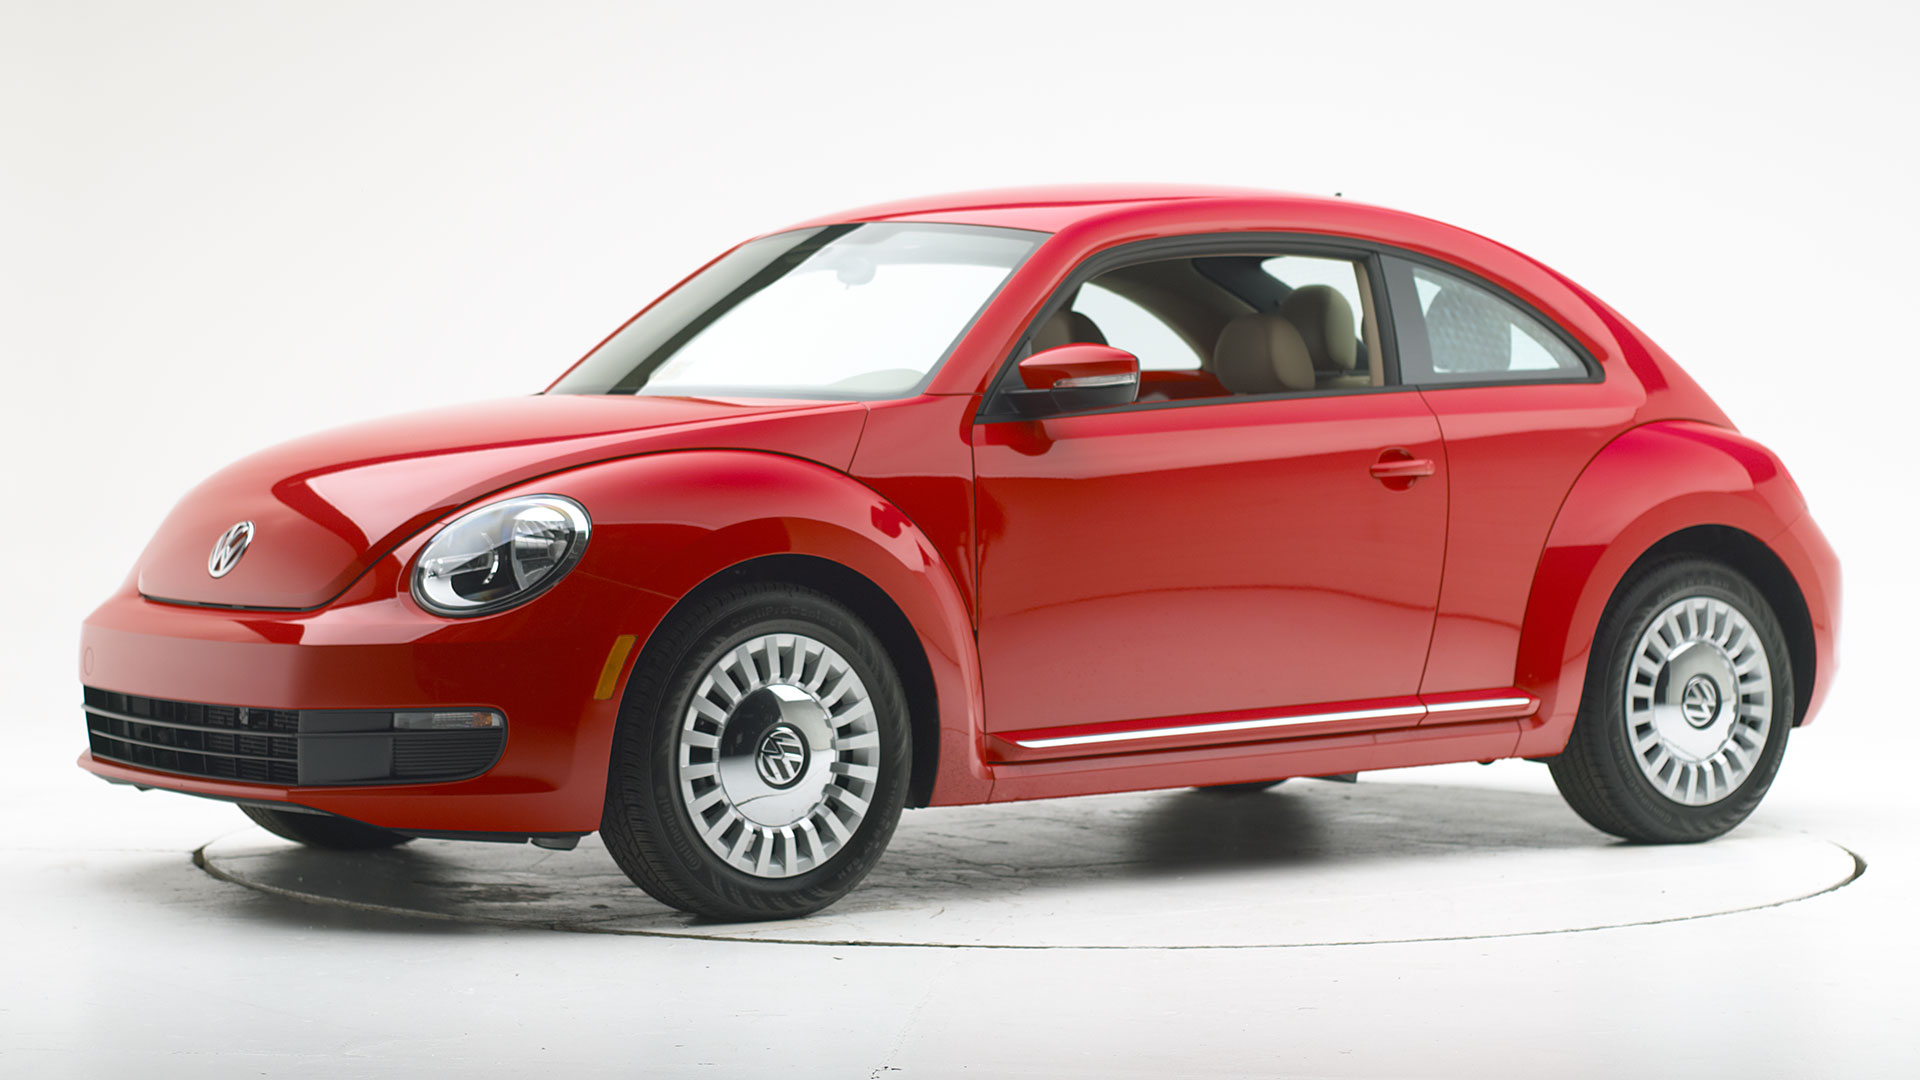 2017 Volkswagen Beetle 2-door hatchback